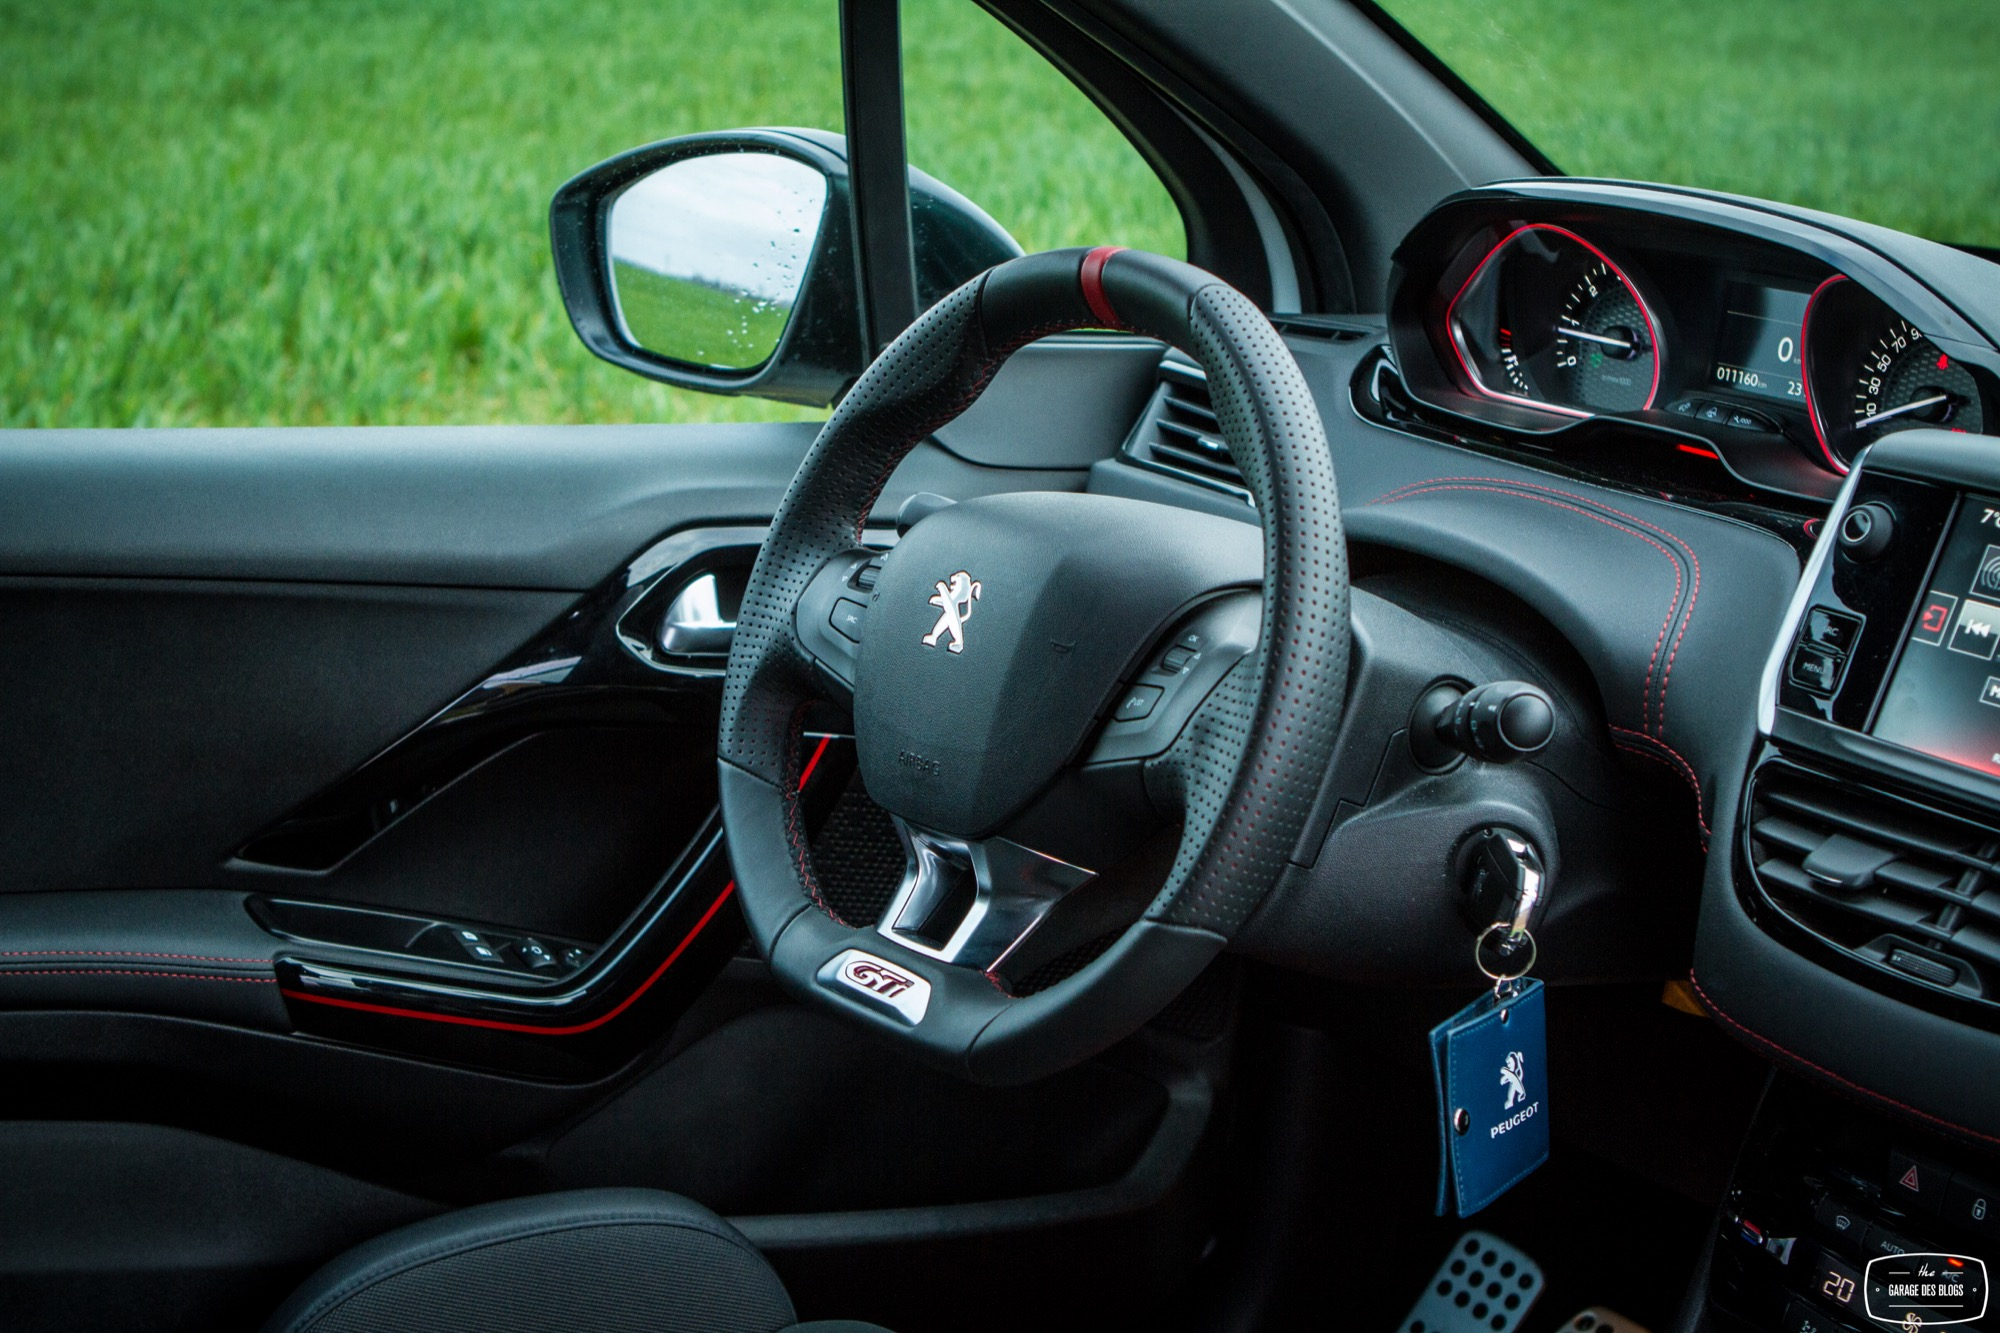 essai peugeot 208 gti 30th interieur 1 le blog de viinz. Black Bedroom Furniture Sets. Home Design Ideas